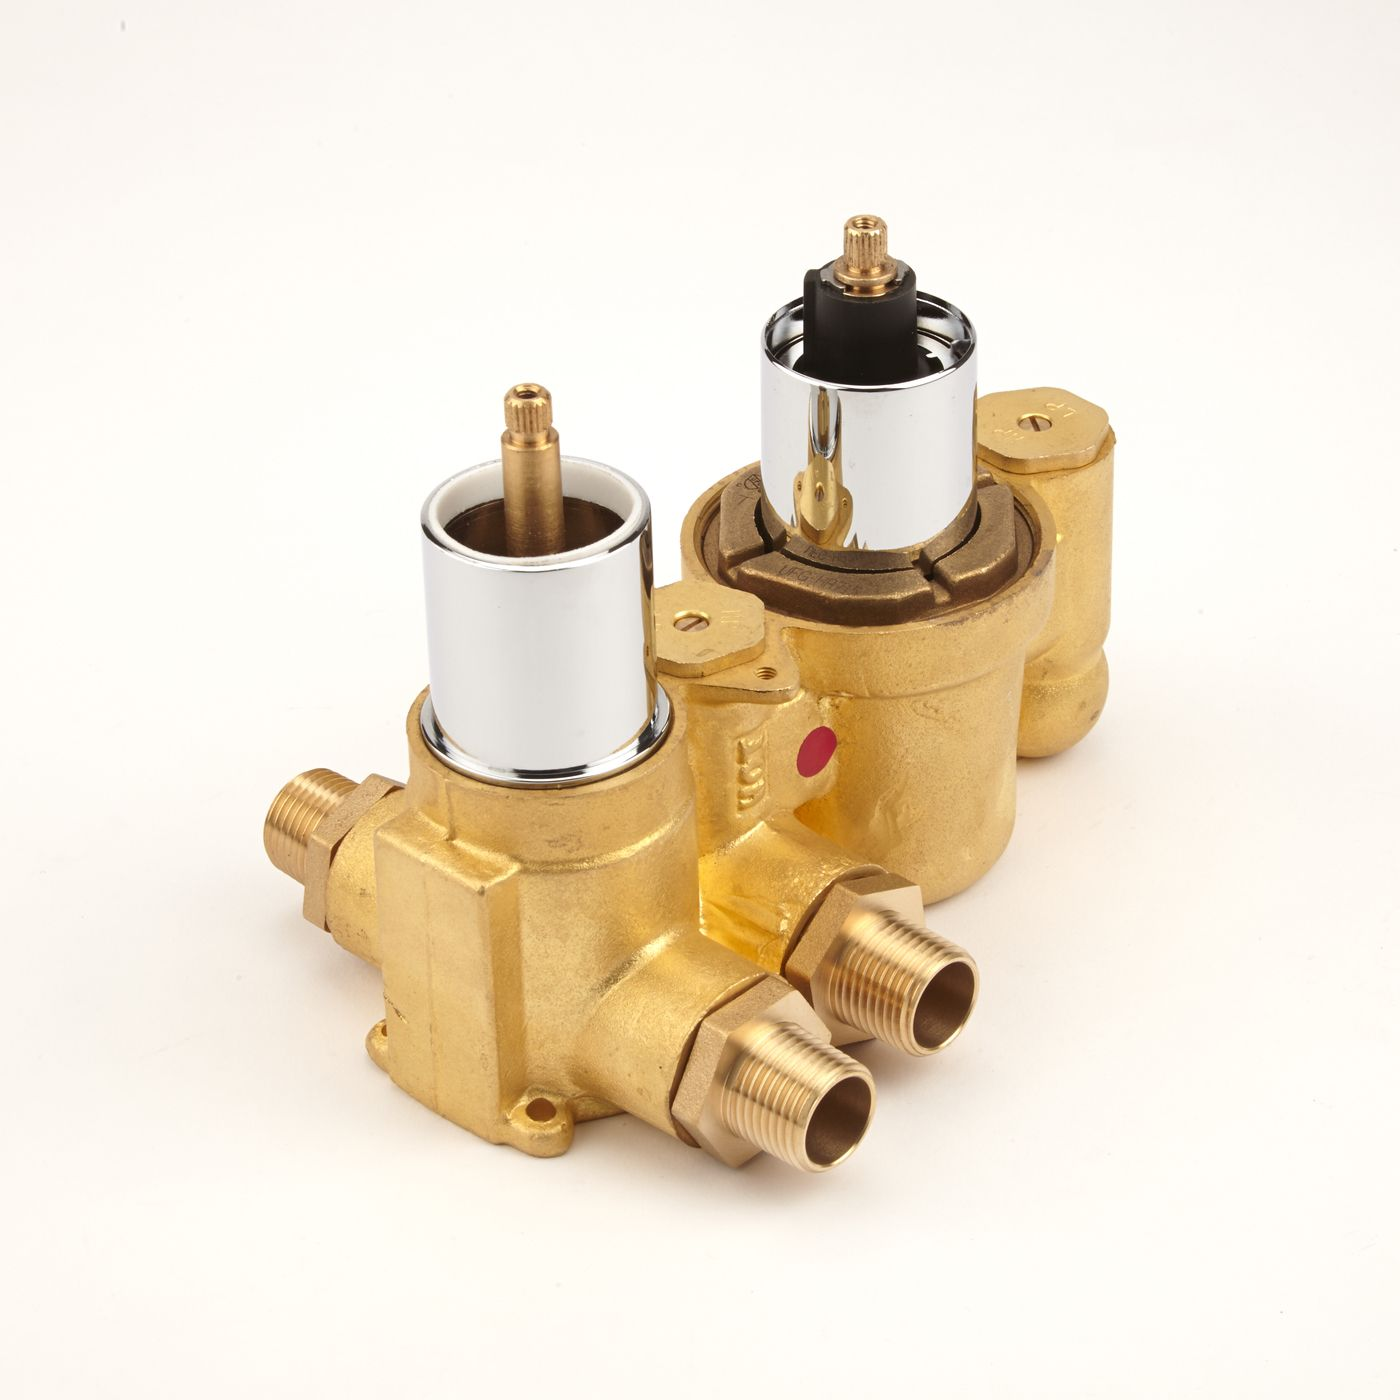 Twin Diverter Rough-In Valve Concealed